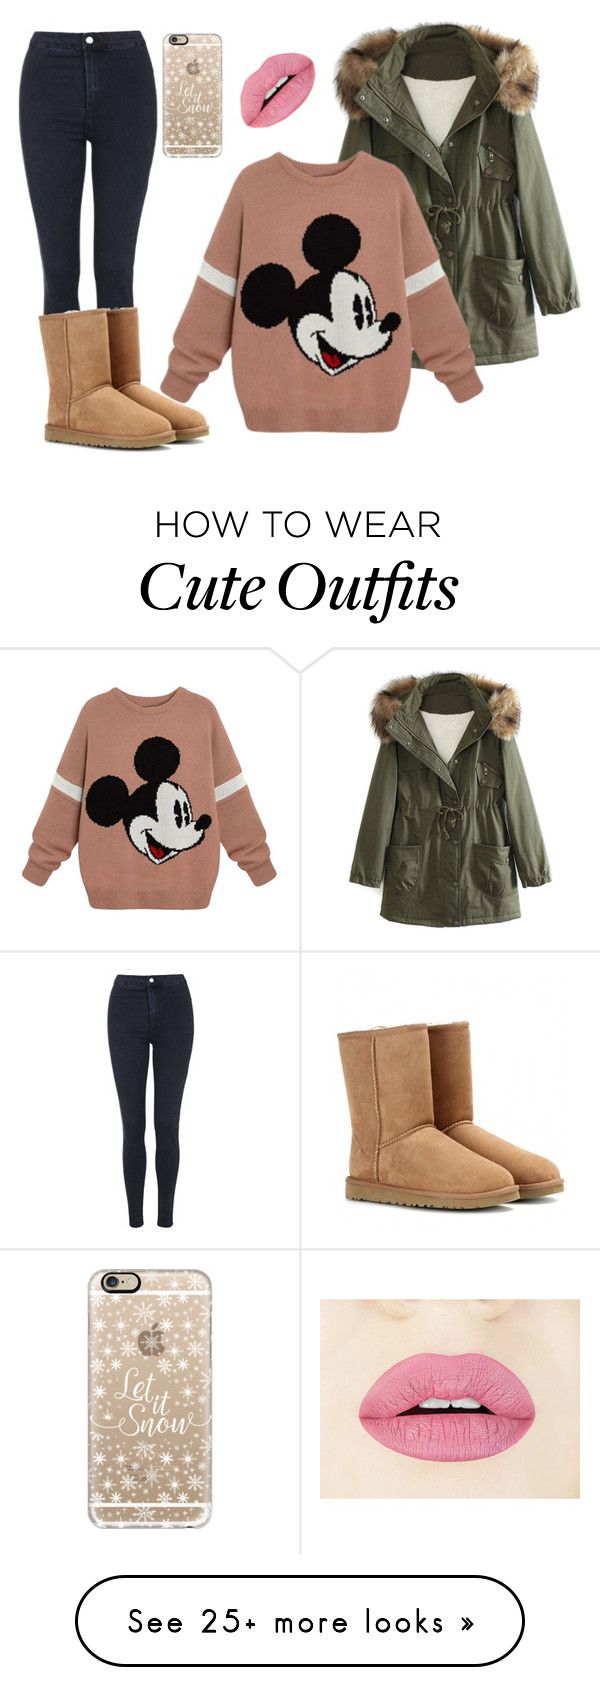 cute winter outfit by wildkate on Polyvore featuring Topshop, WithChic, UGG Australia, Casetify, womens clothing, womens fashion, women, female, woman and misses